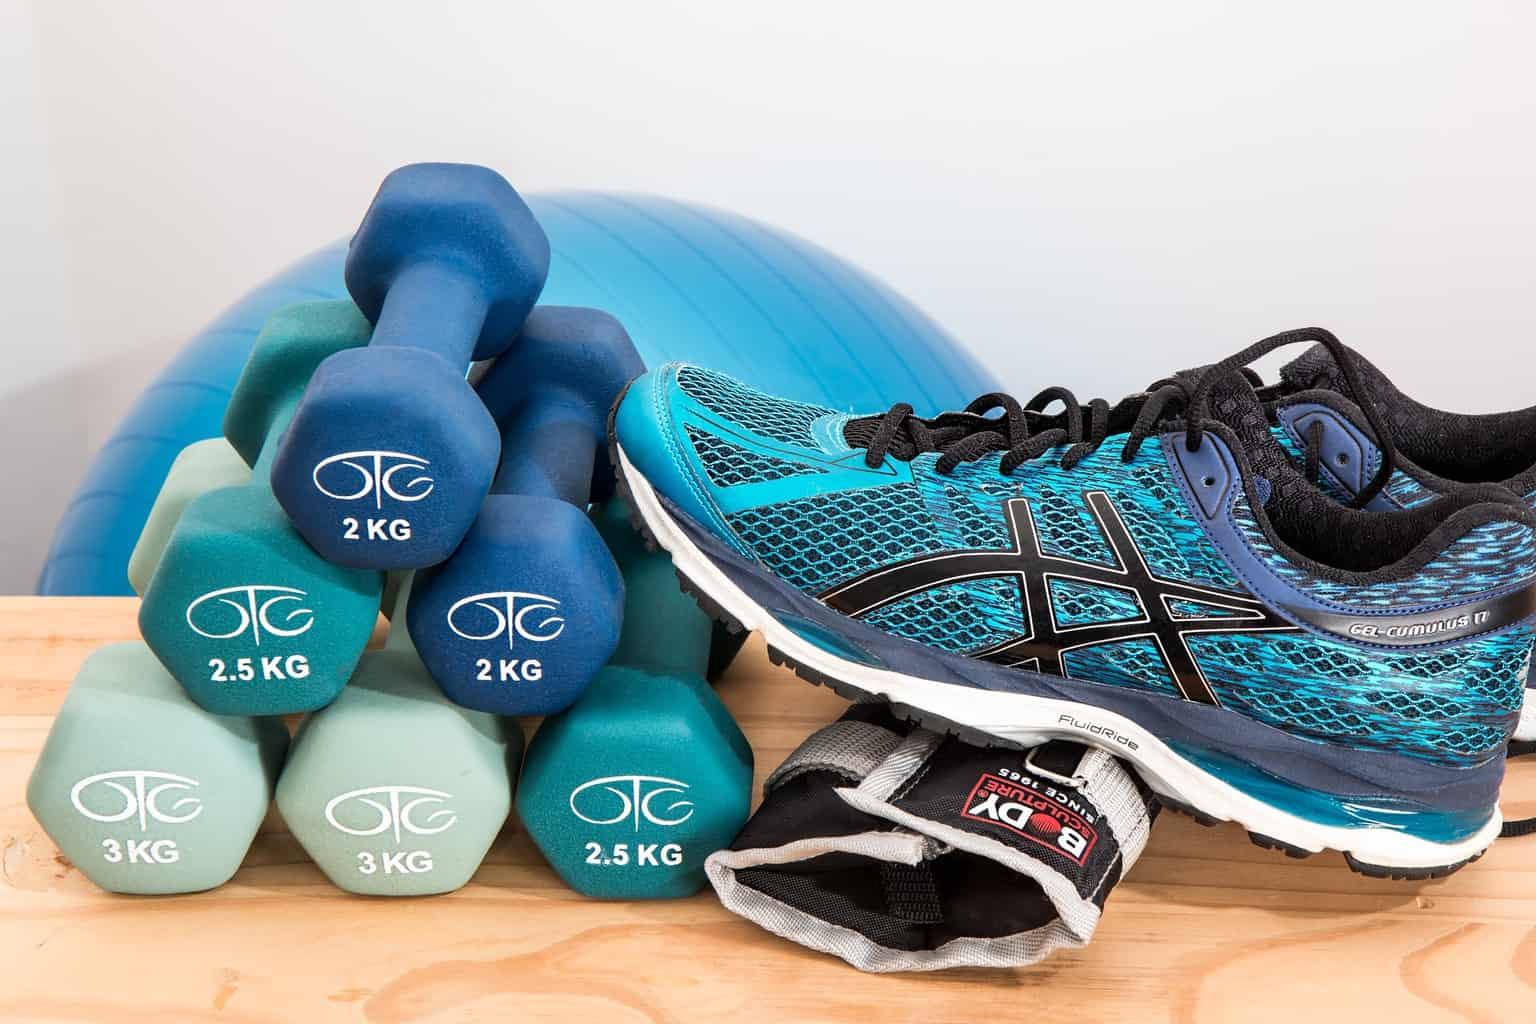 Weights and sports shoes